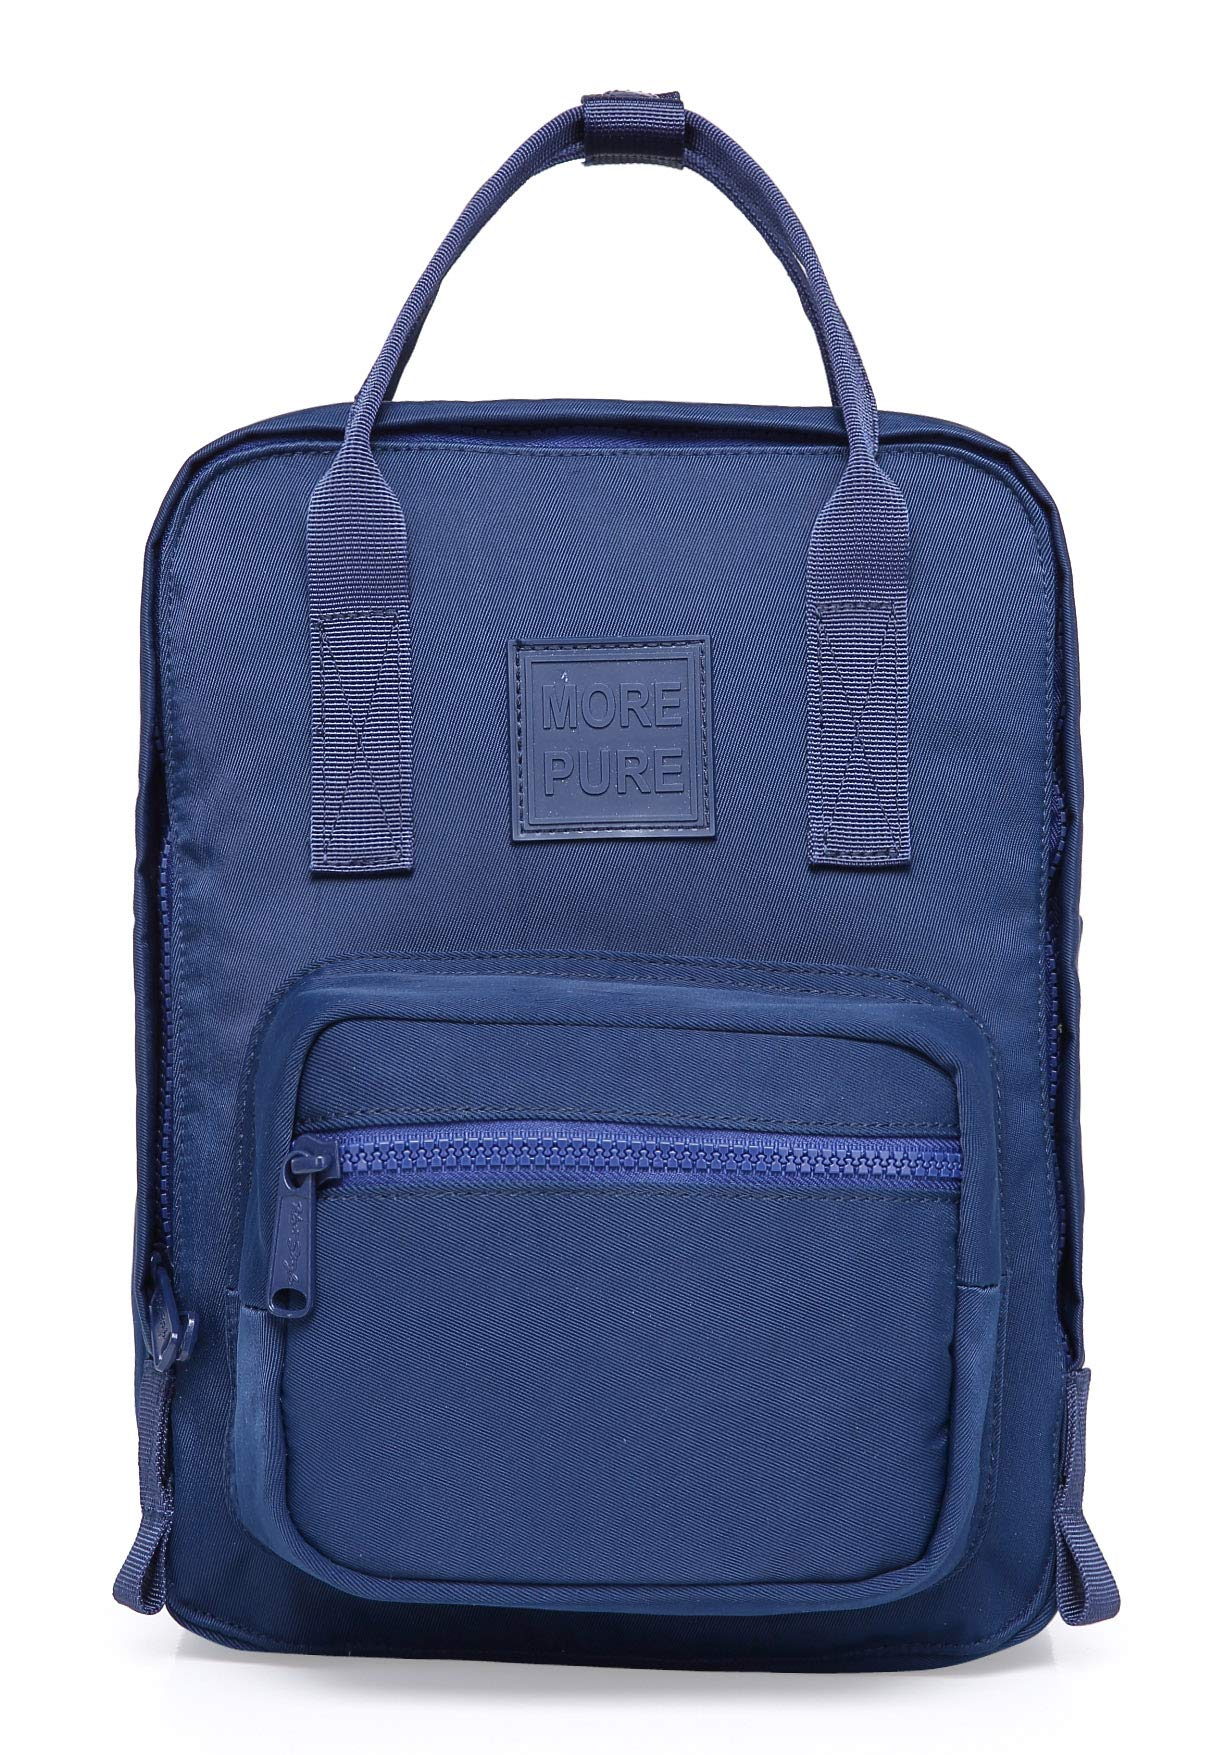 MOREPURE 232s Small Backpack Purse | Fits 10-inch iPad | 11.8''x8.6''x5'' | Navy